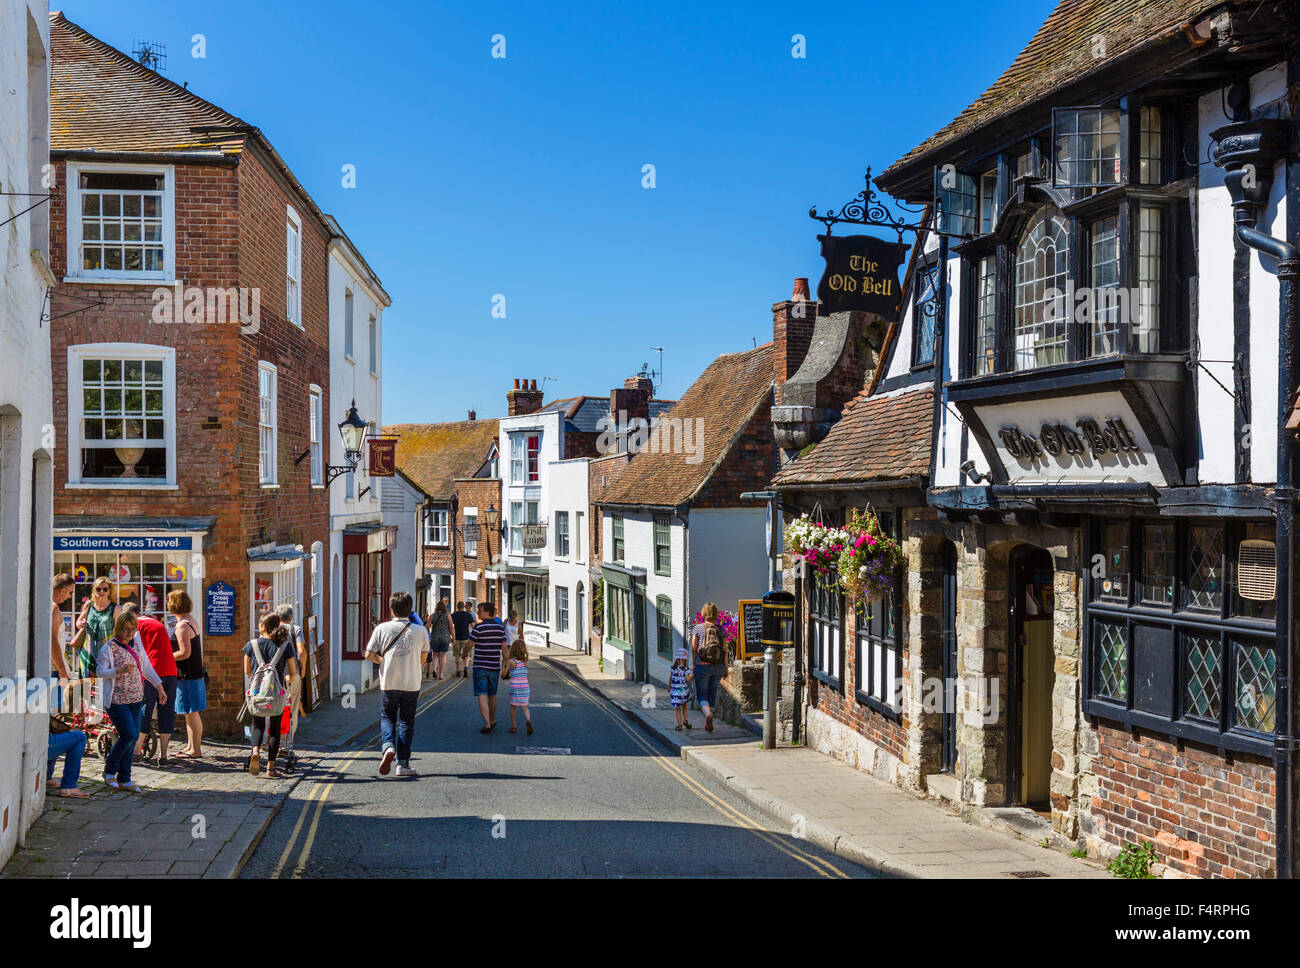 High Street with the Old Bell pub to the right, Rye, East Sussex, England, UK - Stock Image